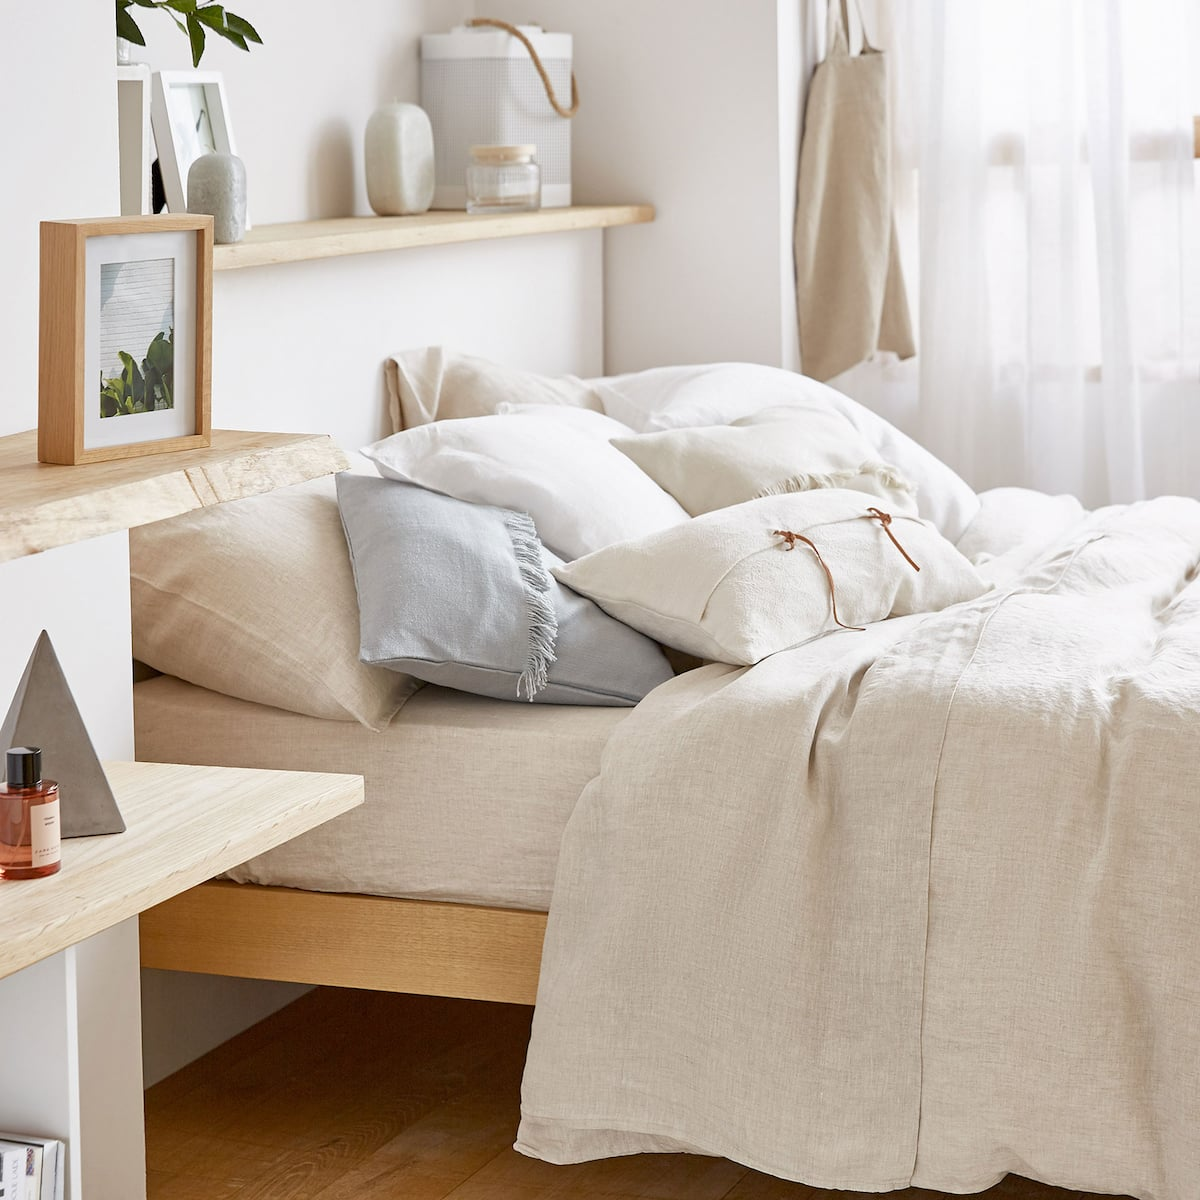 Charmant + Natural Colour Faded Linen Bed Linen